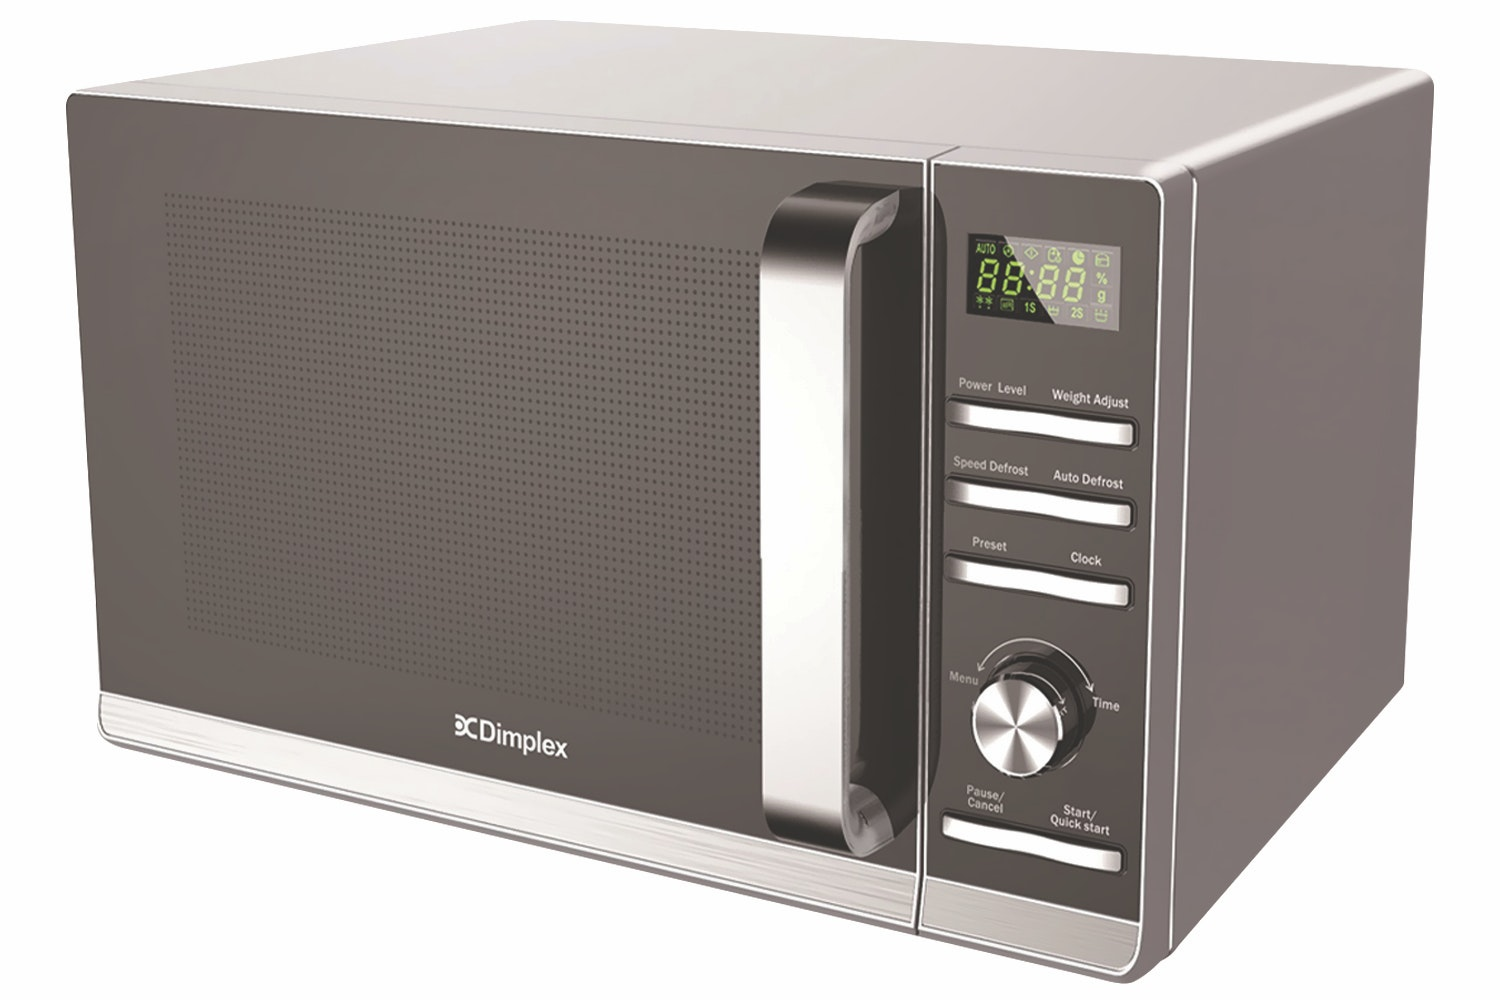 Dimplex 23L 900W Freestanding Microwave | Silver